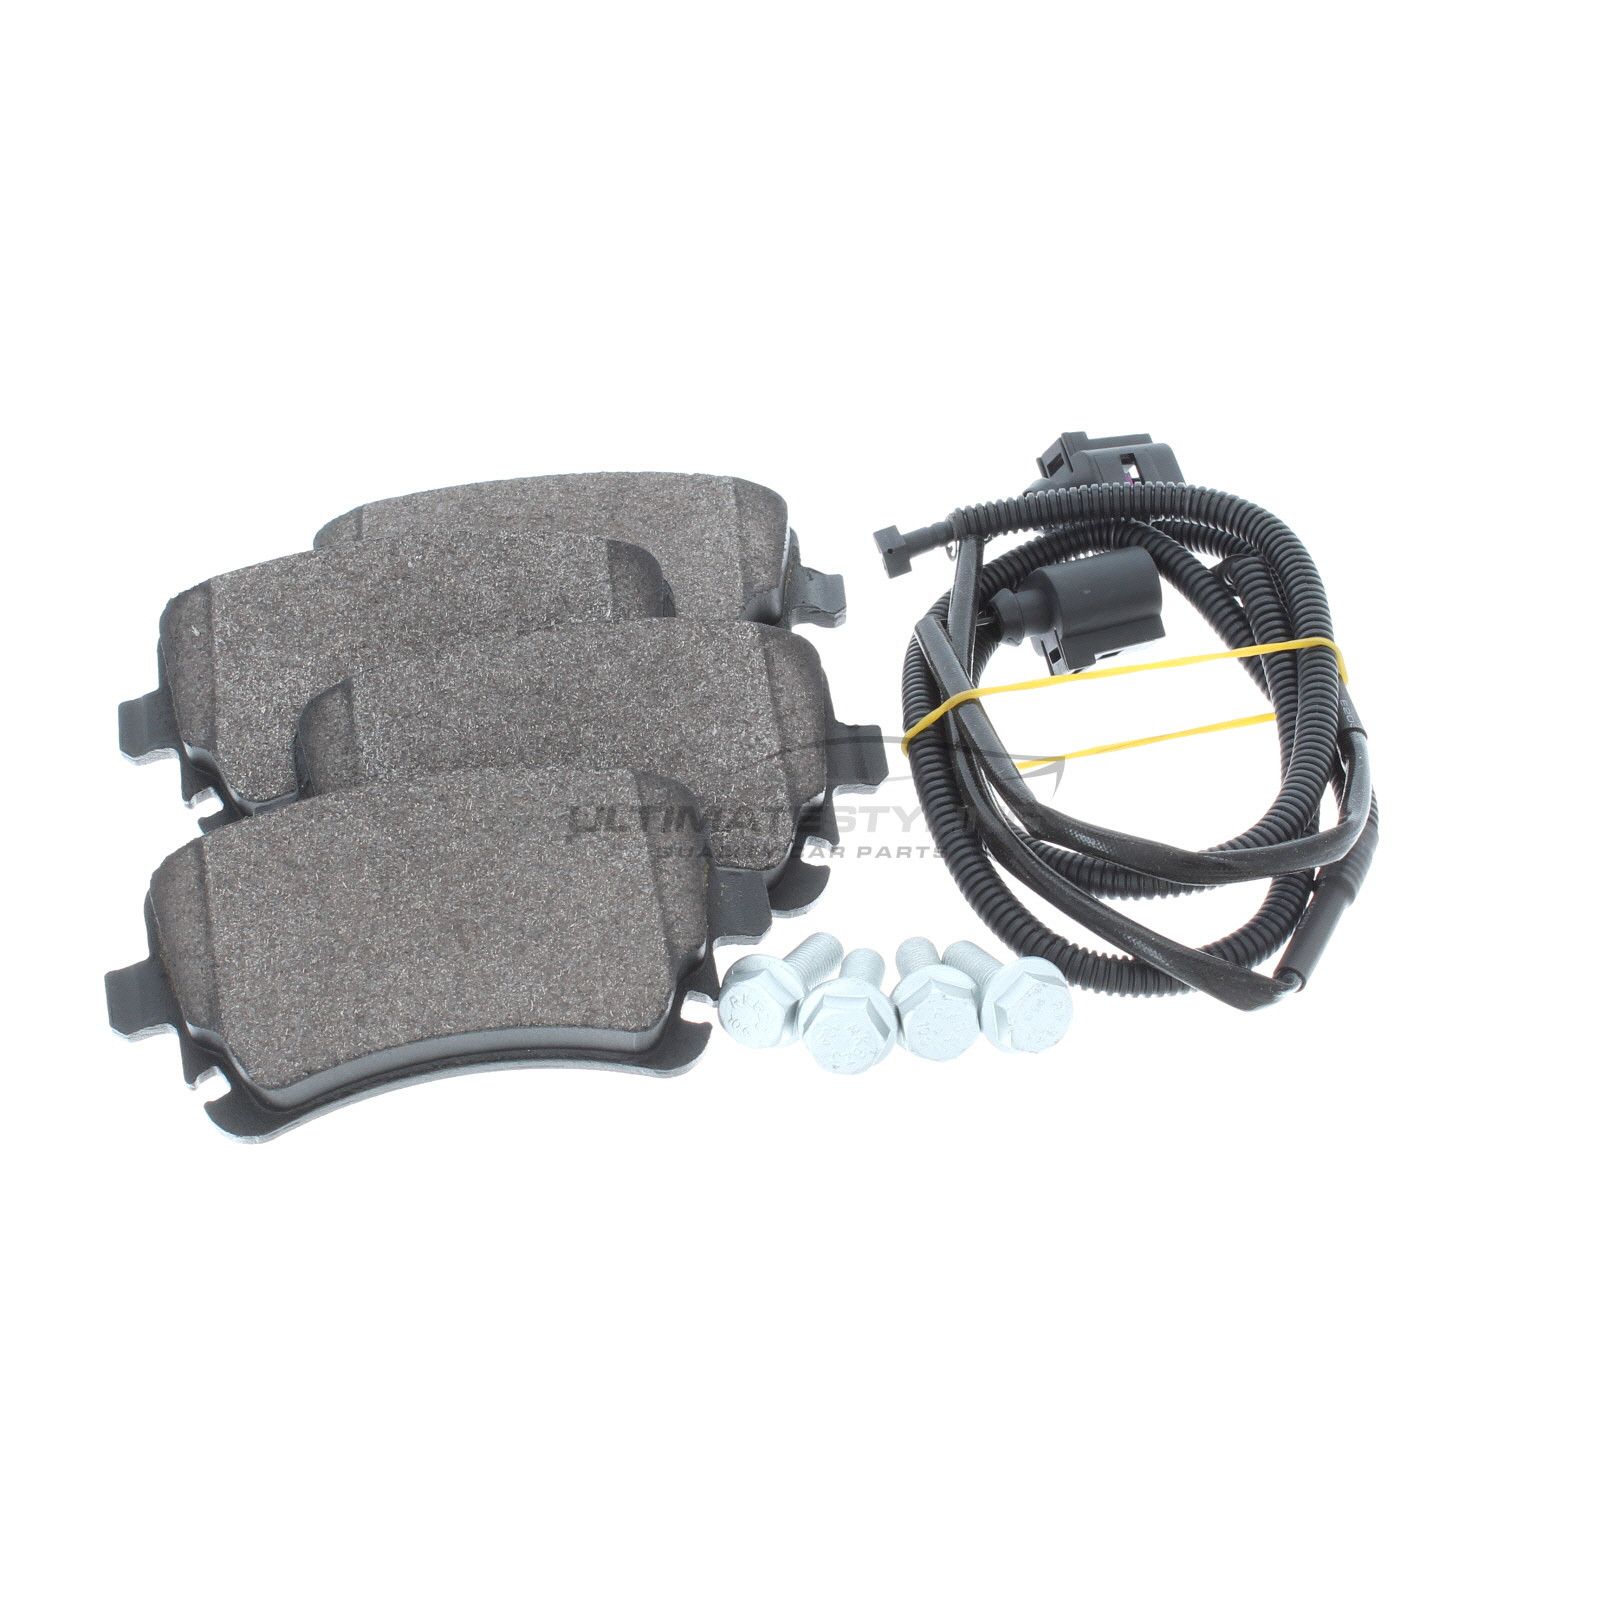 Brake Pads for Audi A8